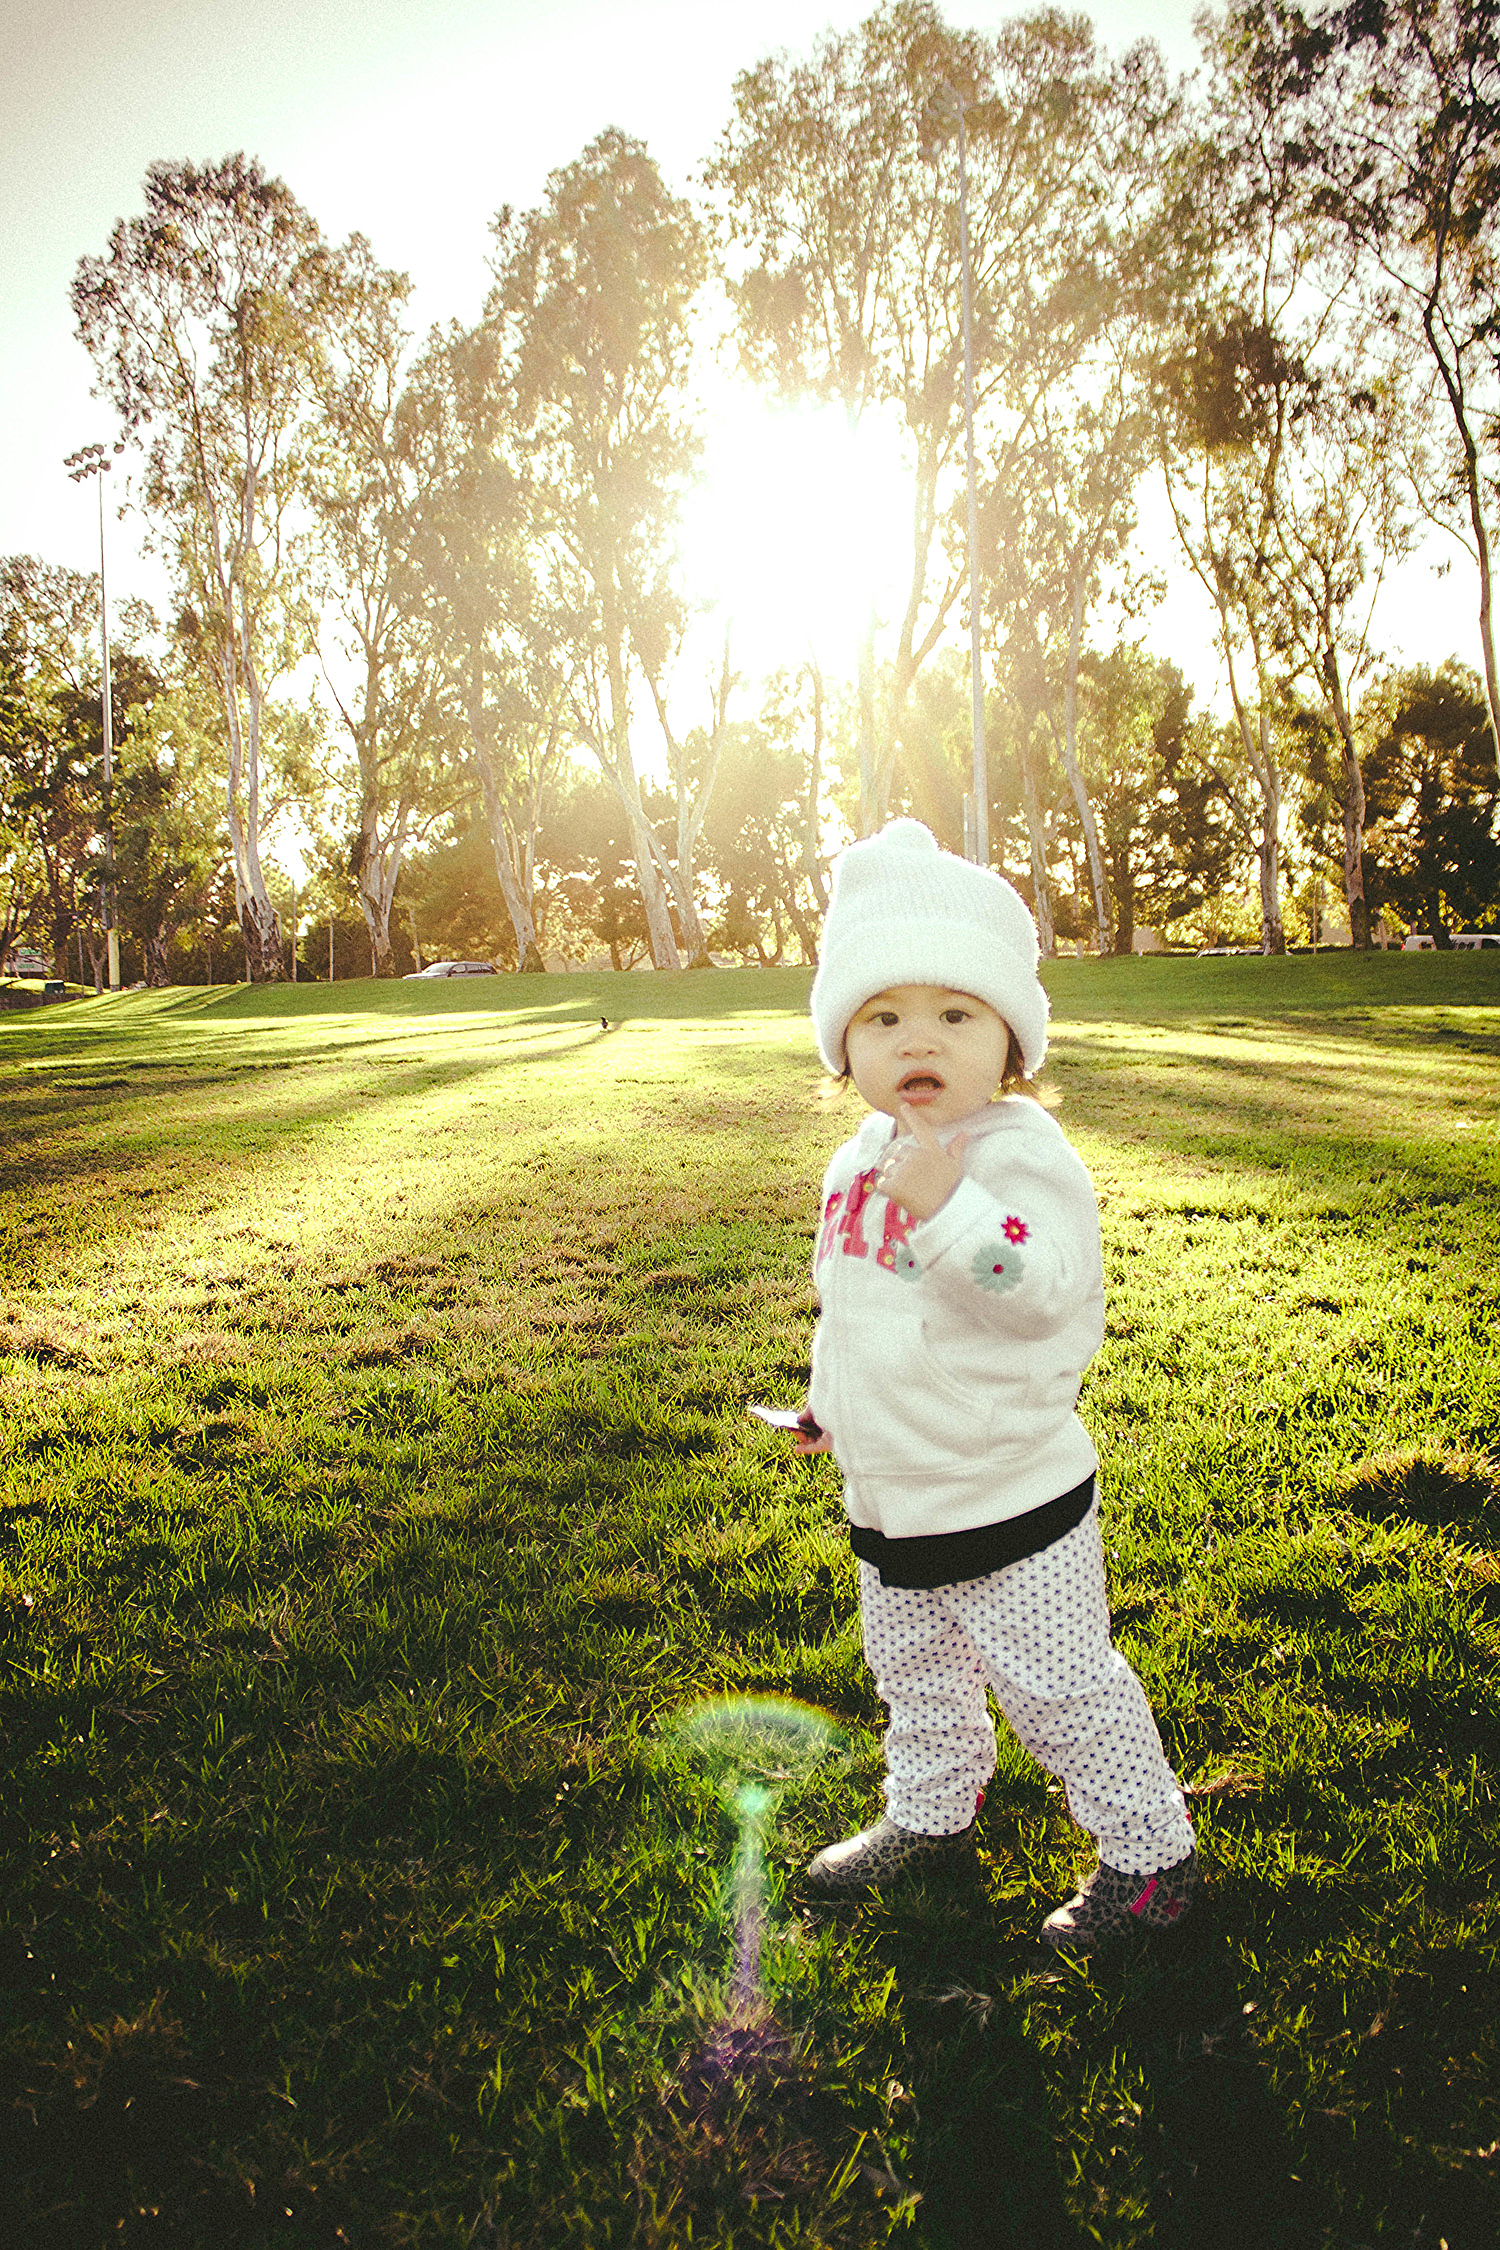 Selah in the golden hour at Torrance Wilson Park | fit for the soul